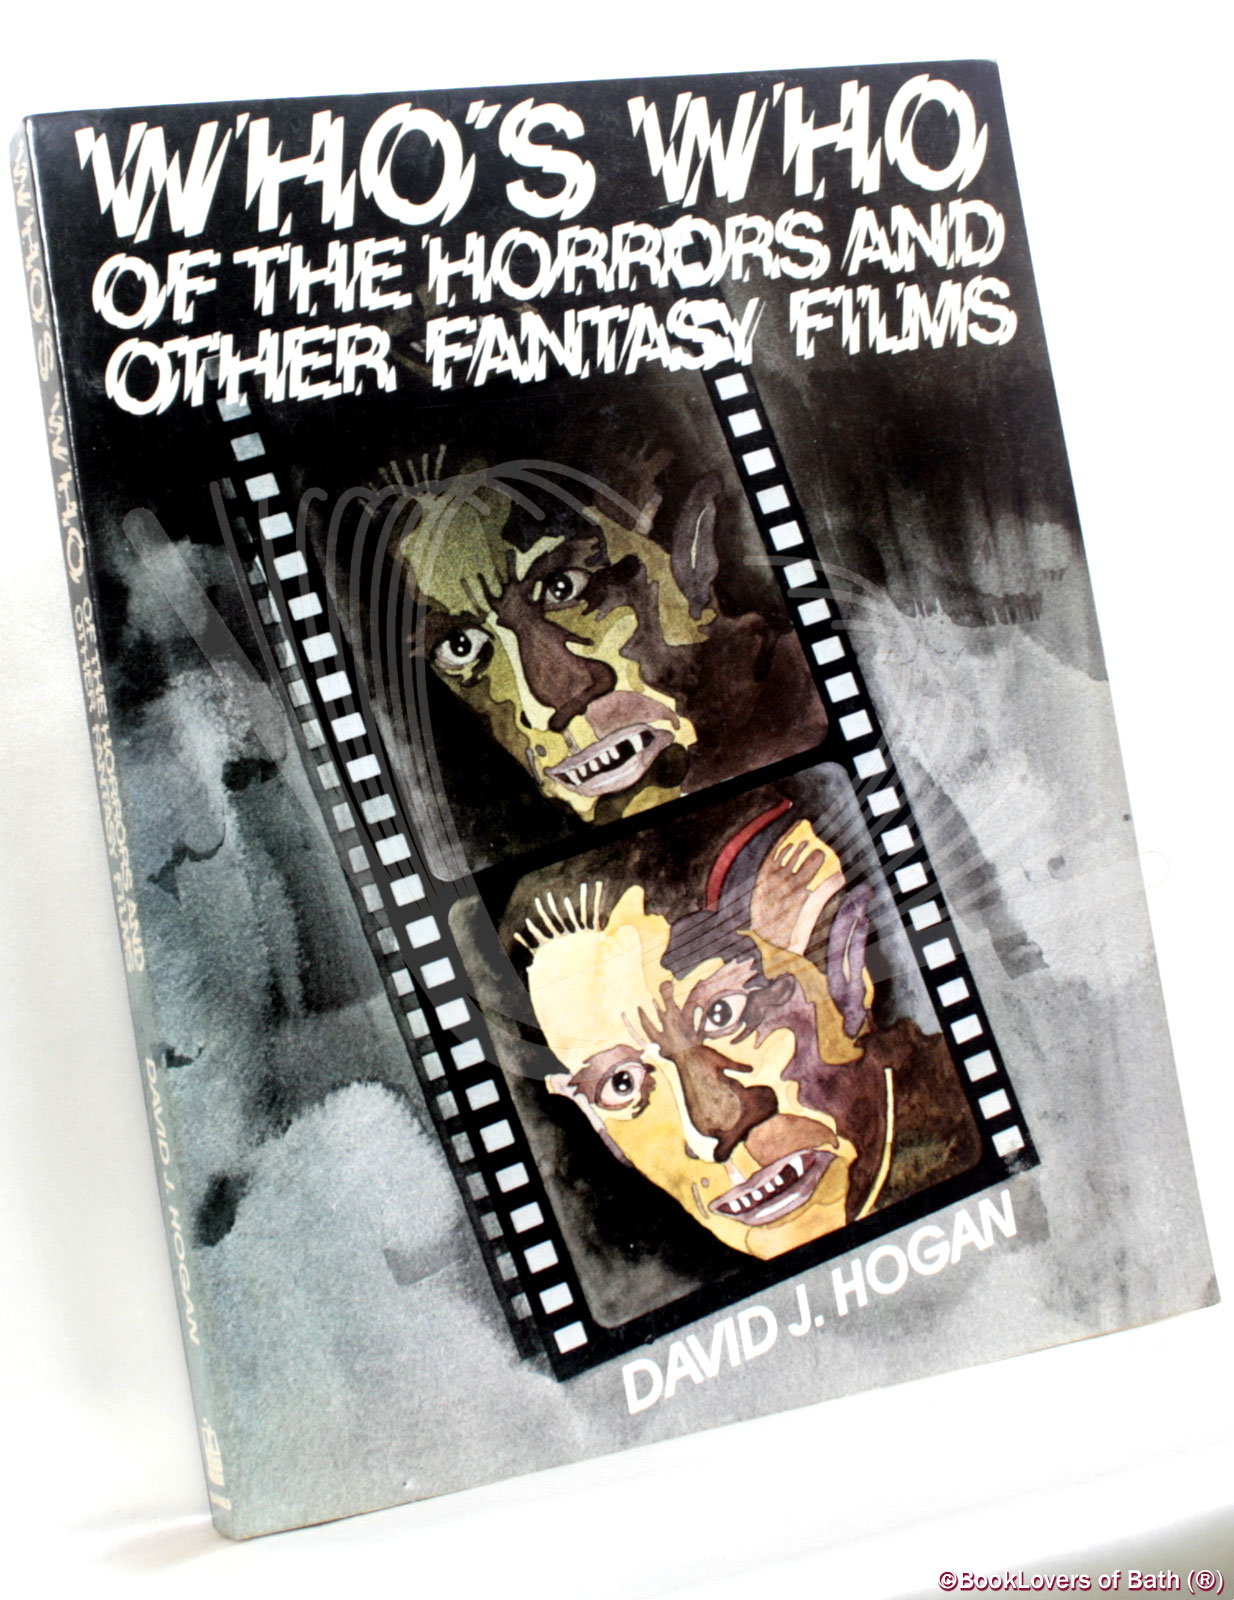 Who's Who of the Horrors and Other Fantasy Films: The International Personality Encyclopedia of the Fantastic Film - David J. Hogan